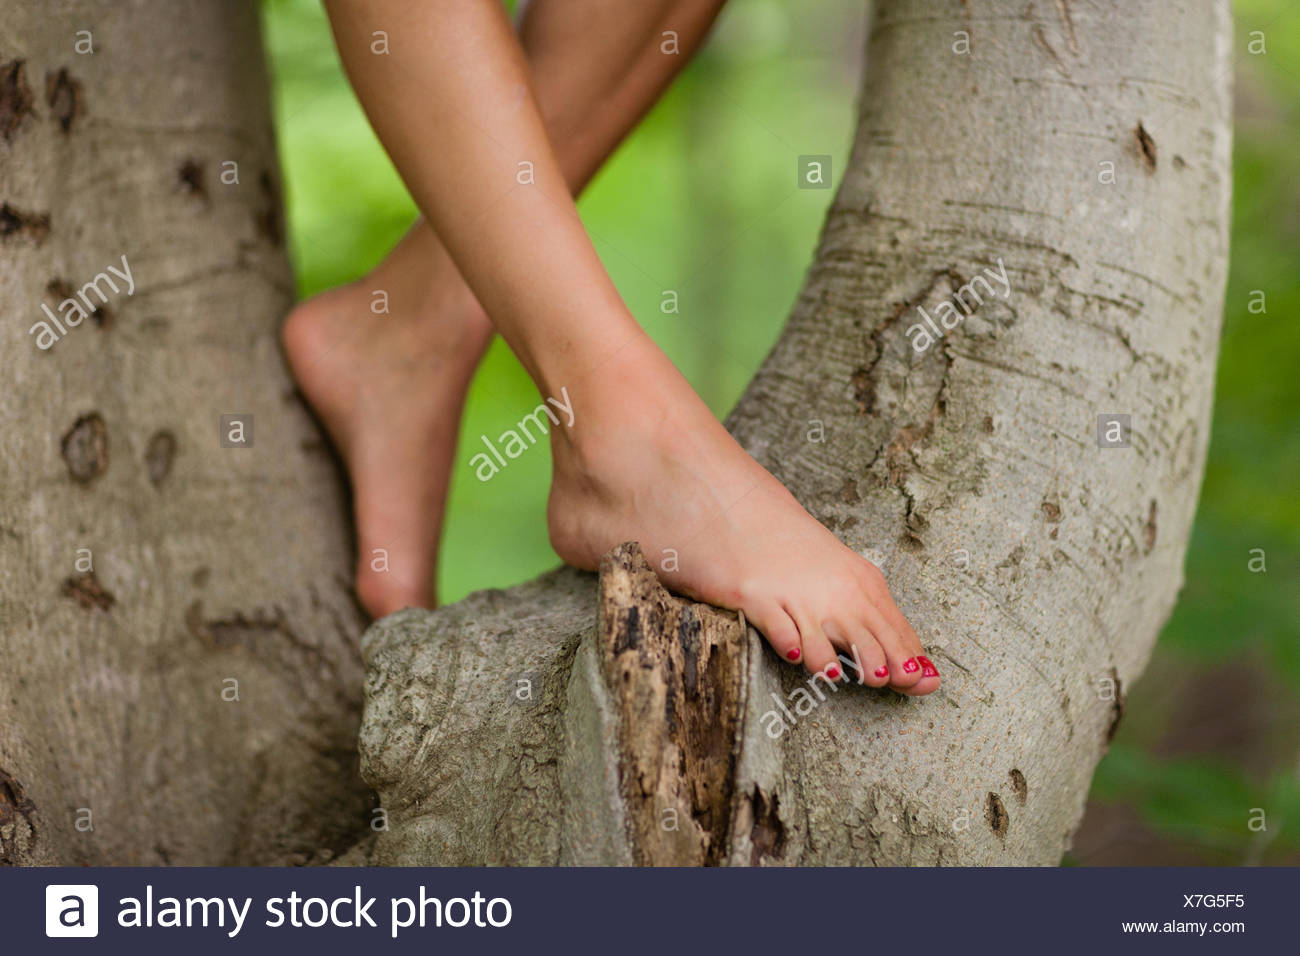 Les jambes nues et les pieds de young woman standing in tree Photo Stock